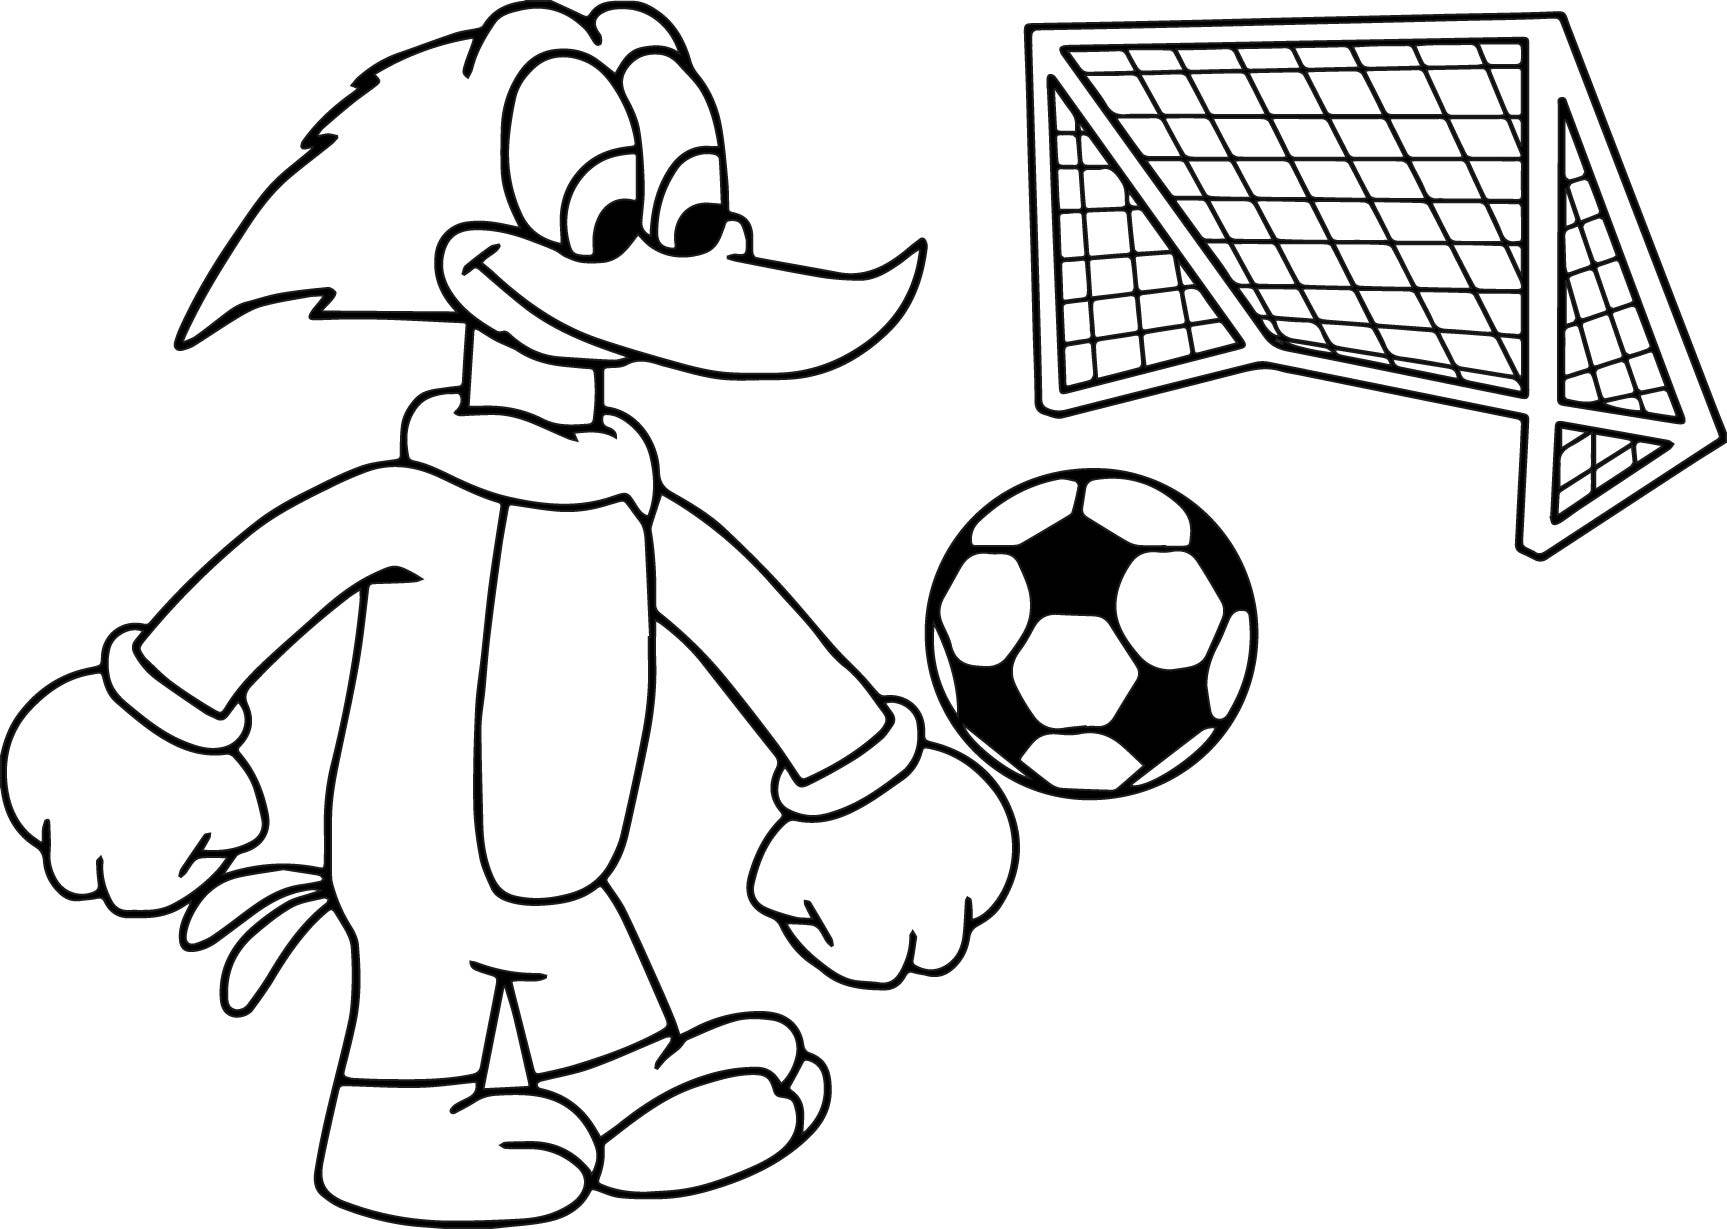 Woody Woodpacker Play Football Soccer Coloring Page